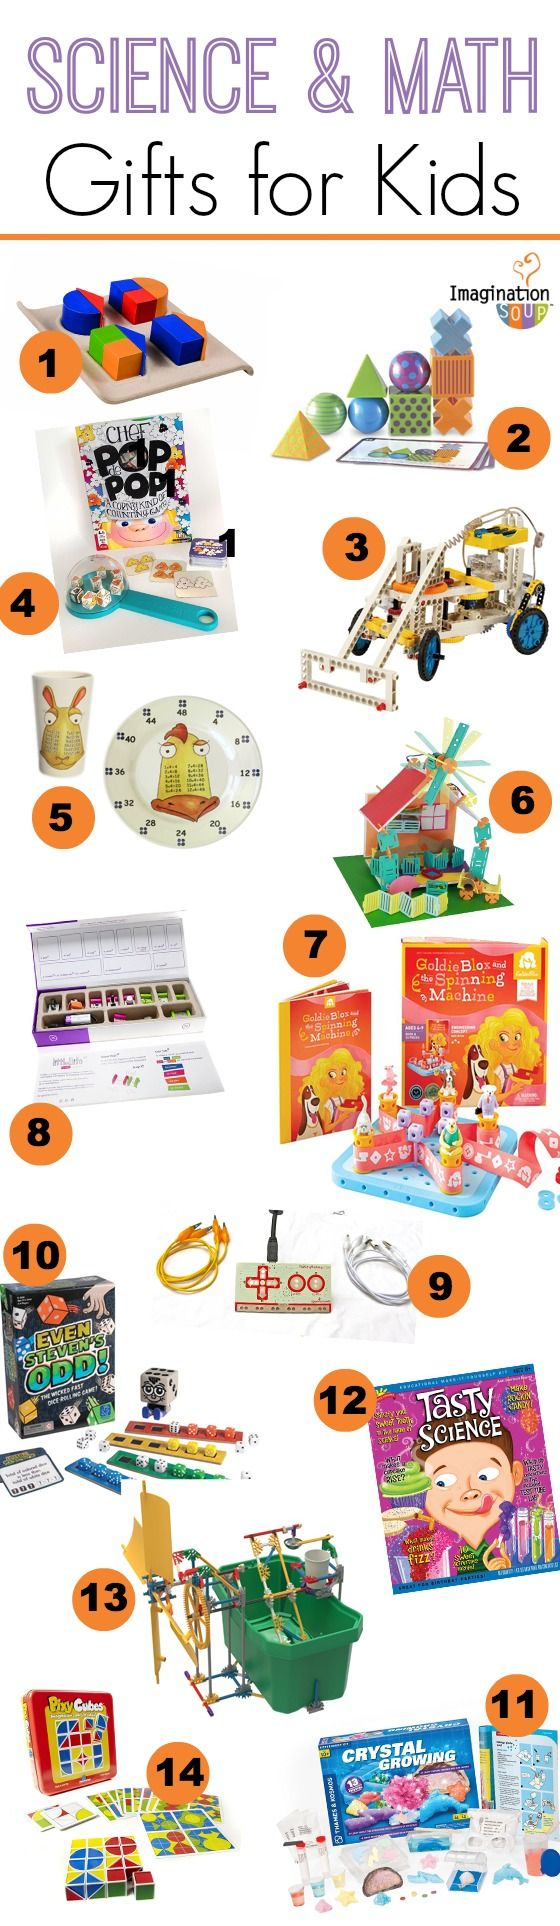 awesome gift ideas for kids who love math and science!